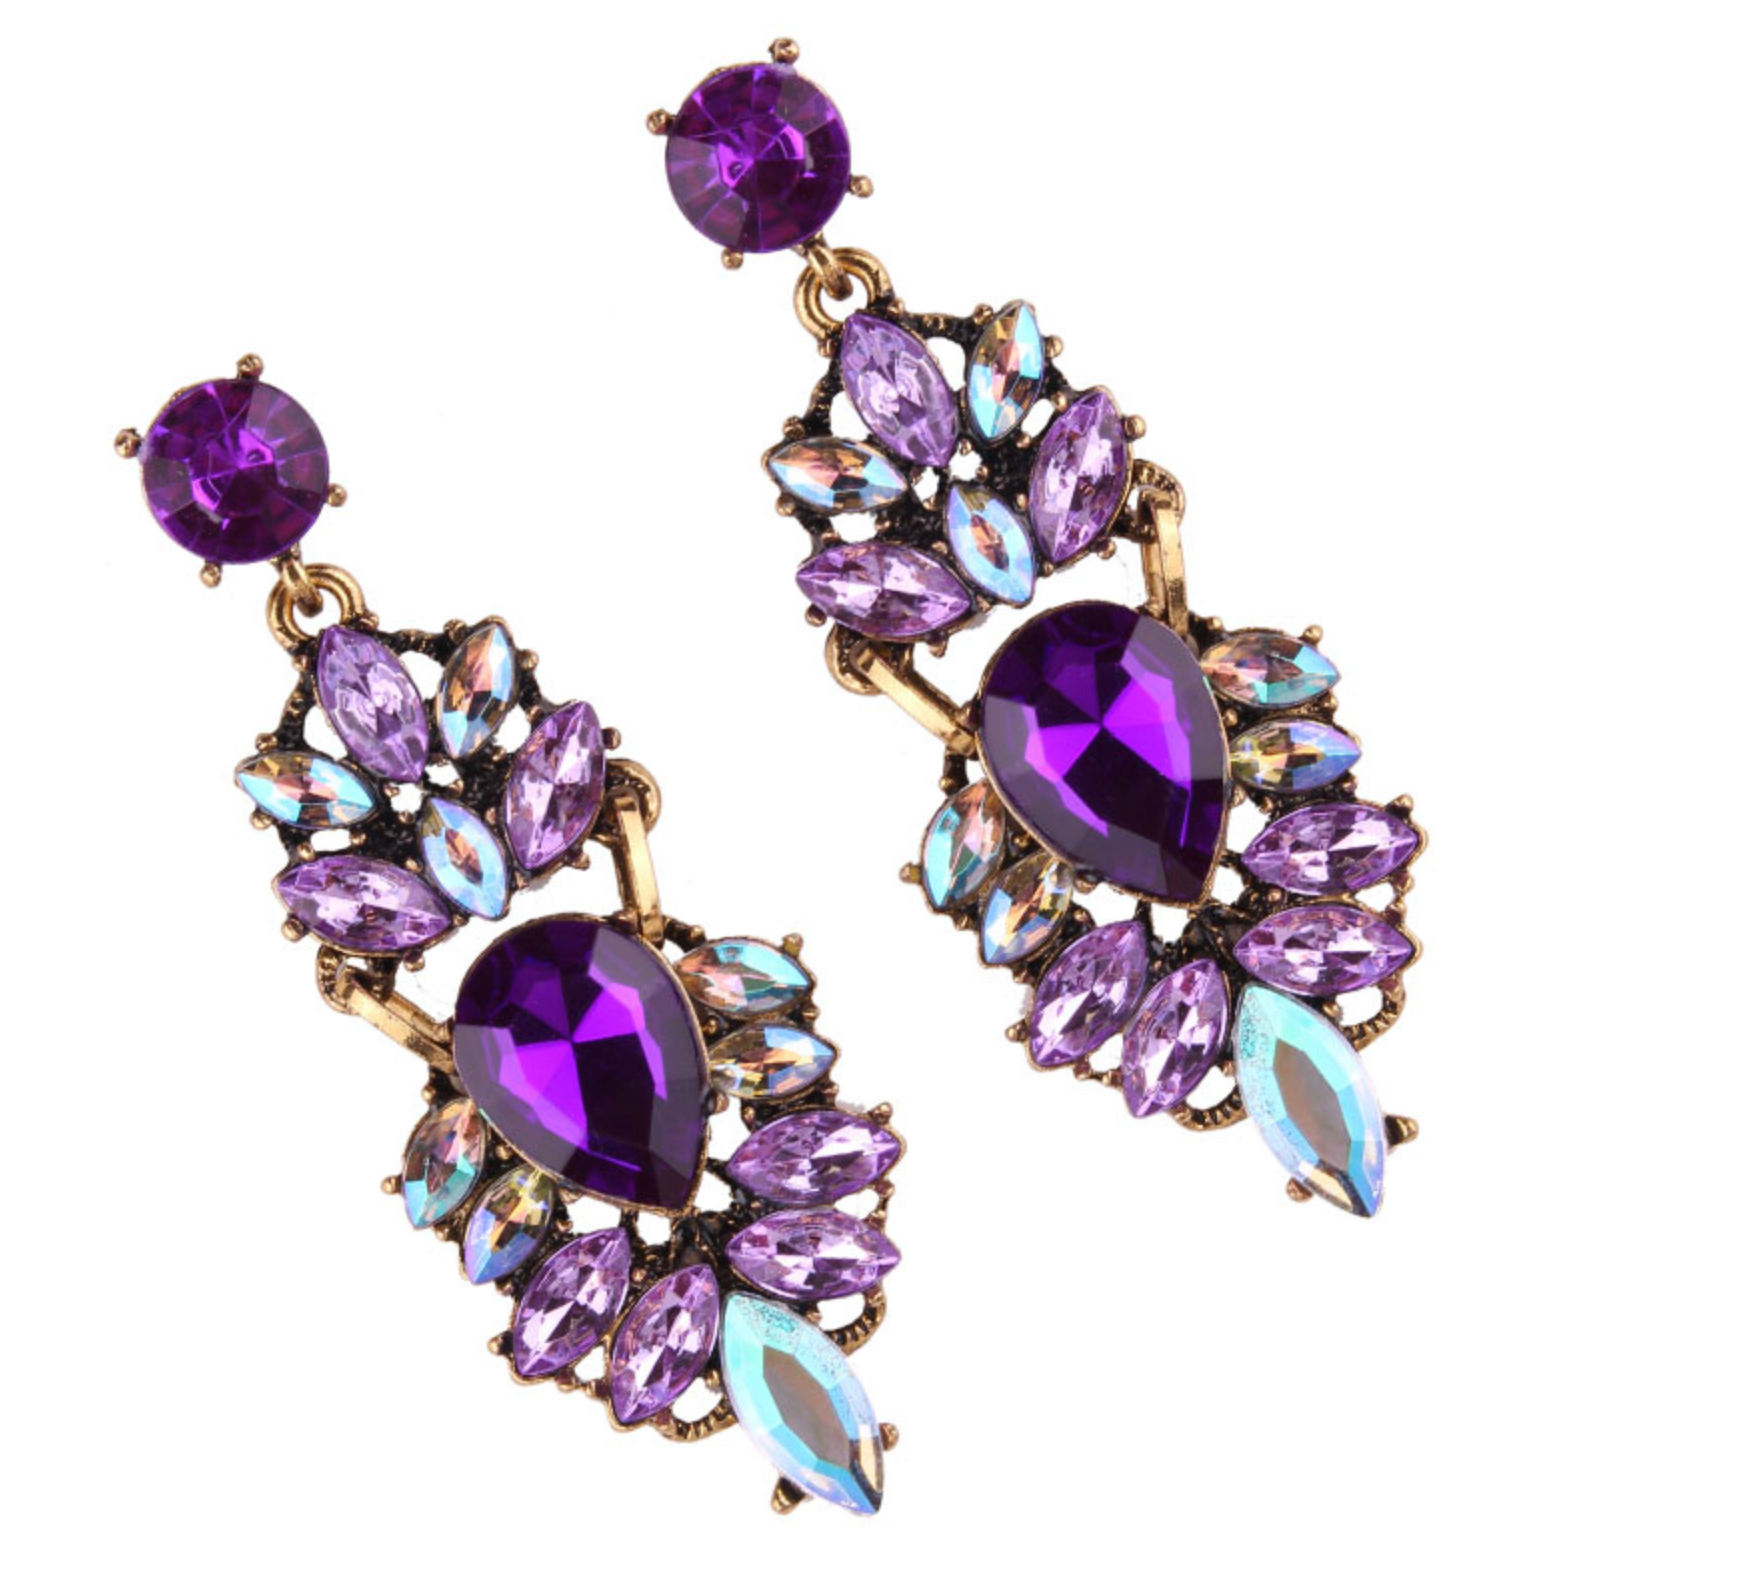 shelleysblingcom earrings blow accessories to jewelry money collections purple paparazzi